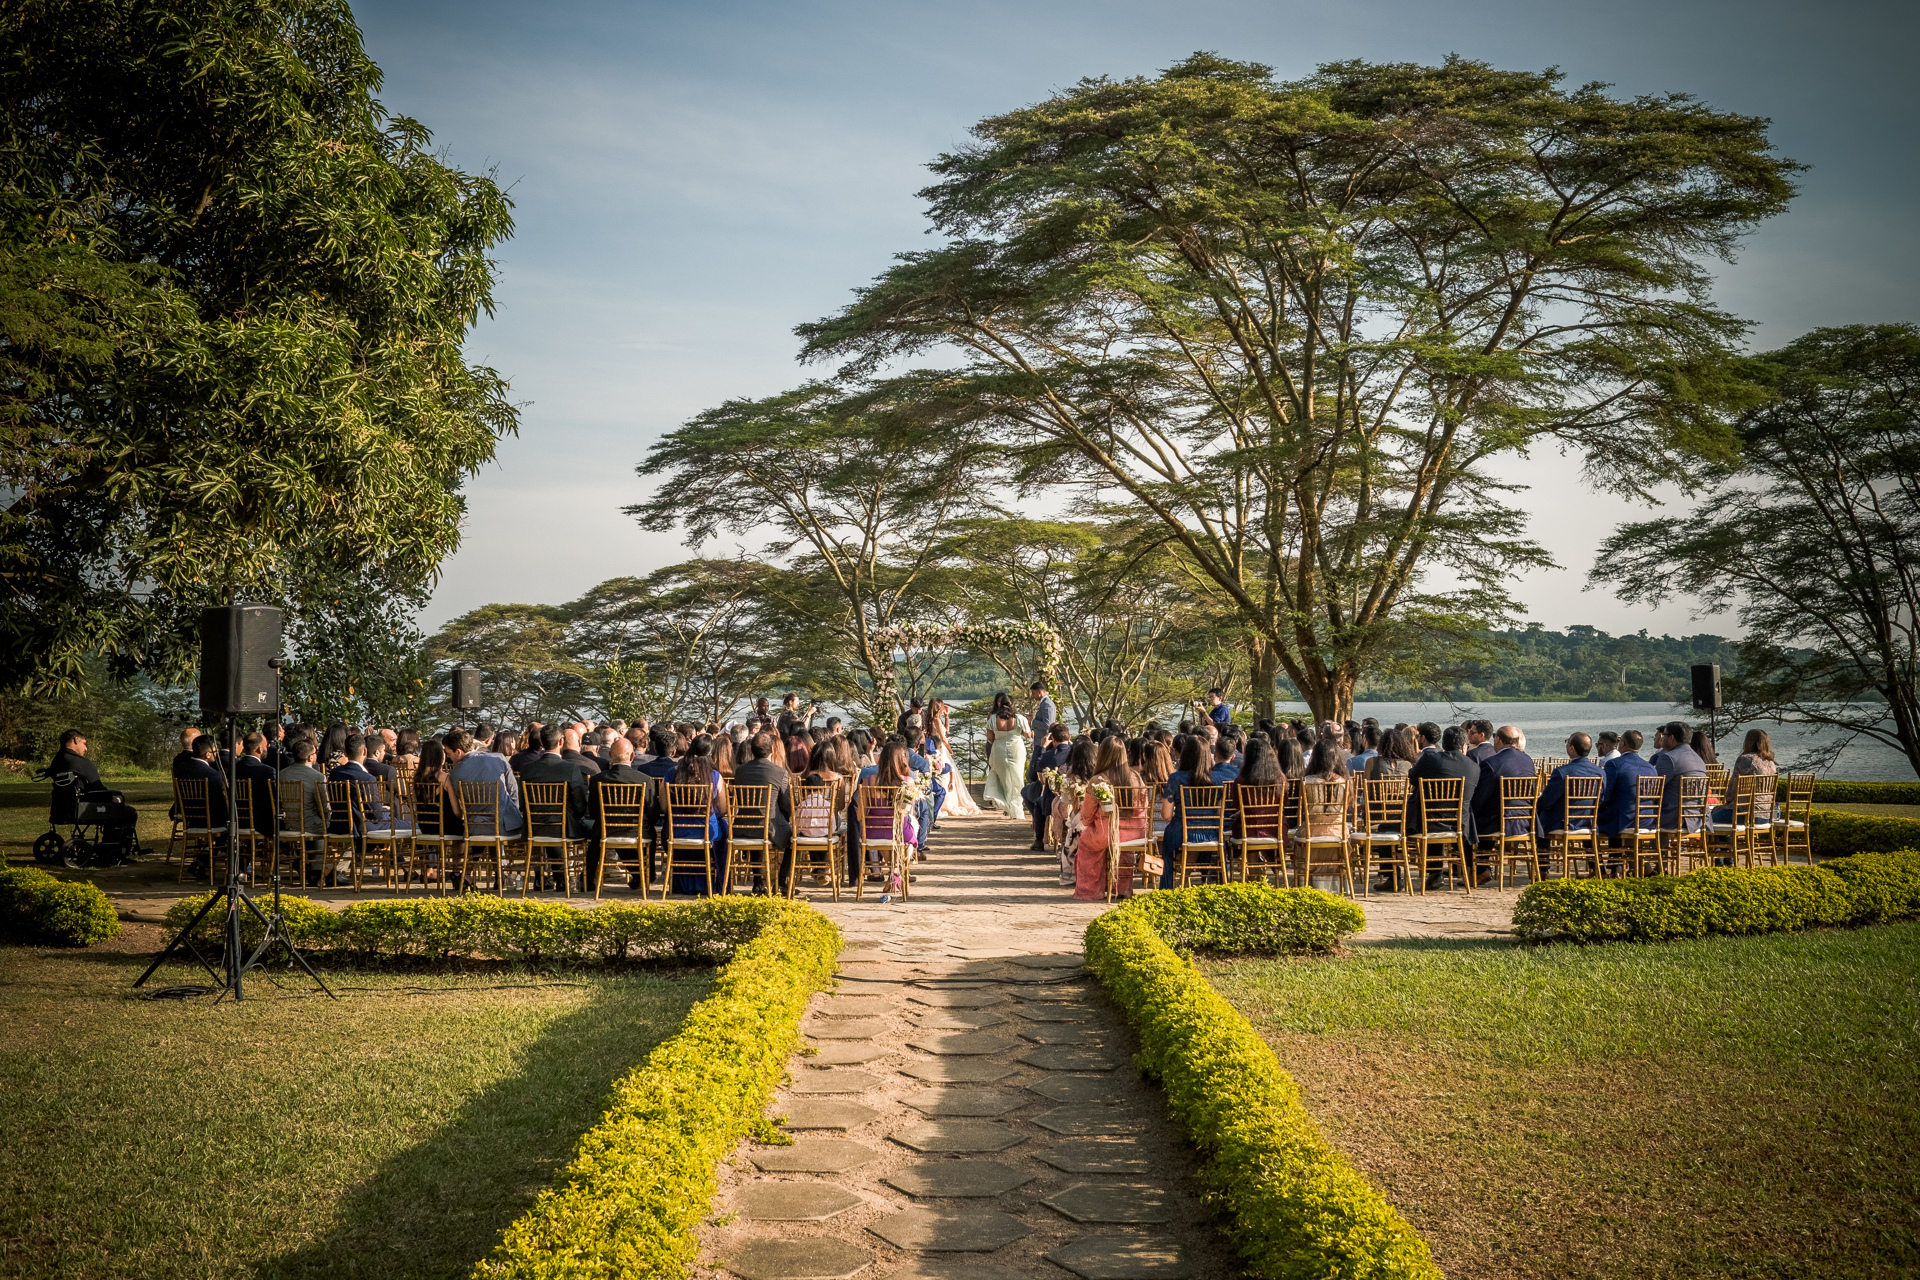 Garden wedding ceremony at waterfront - photo by Sephi Bergerson